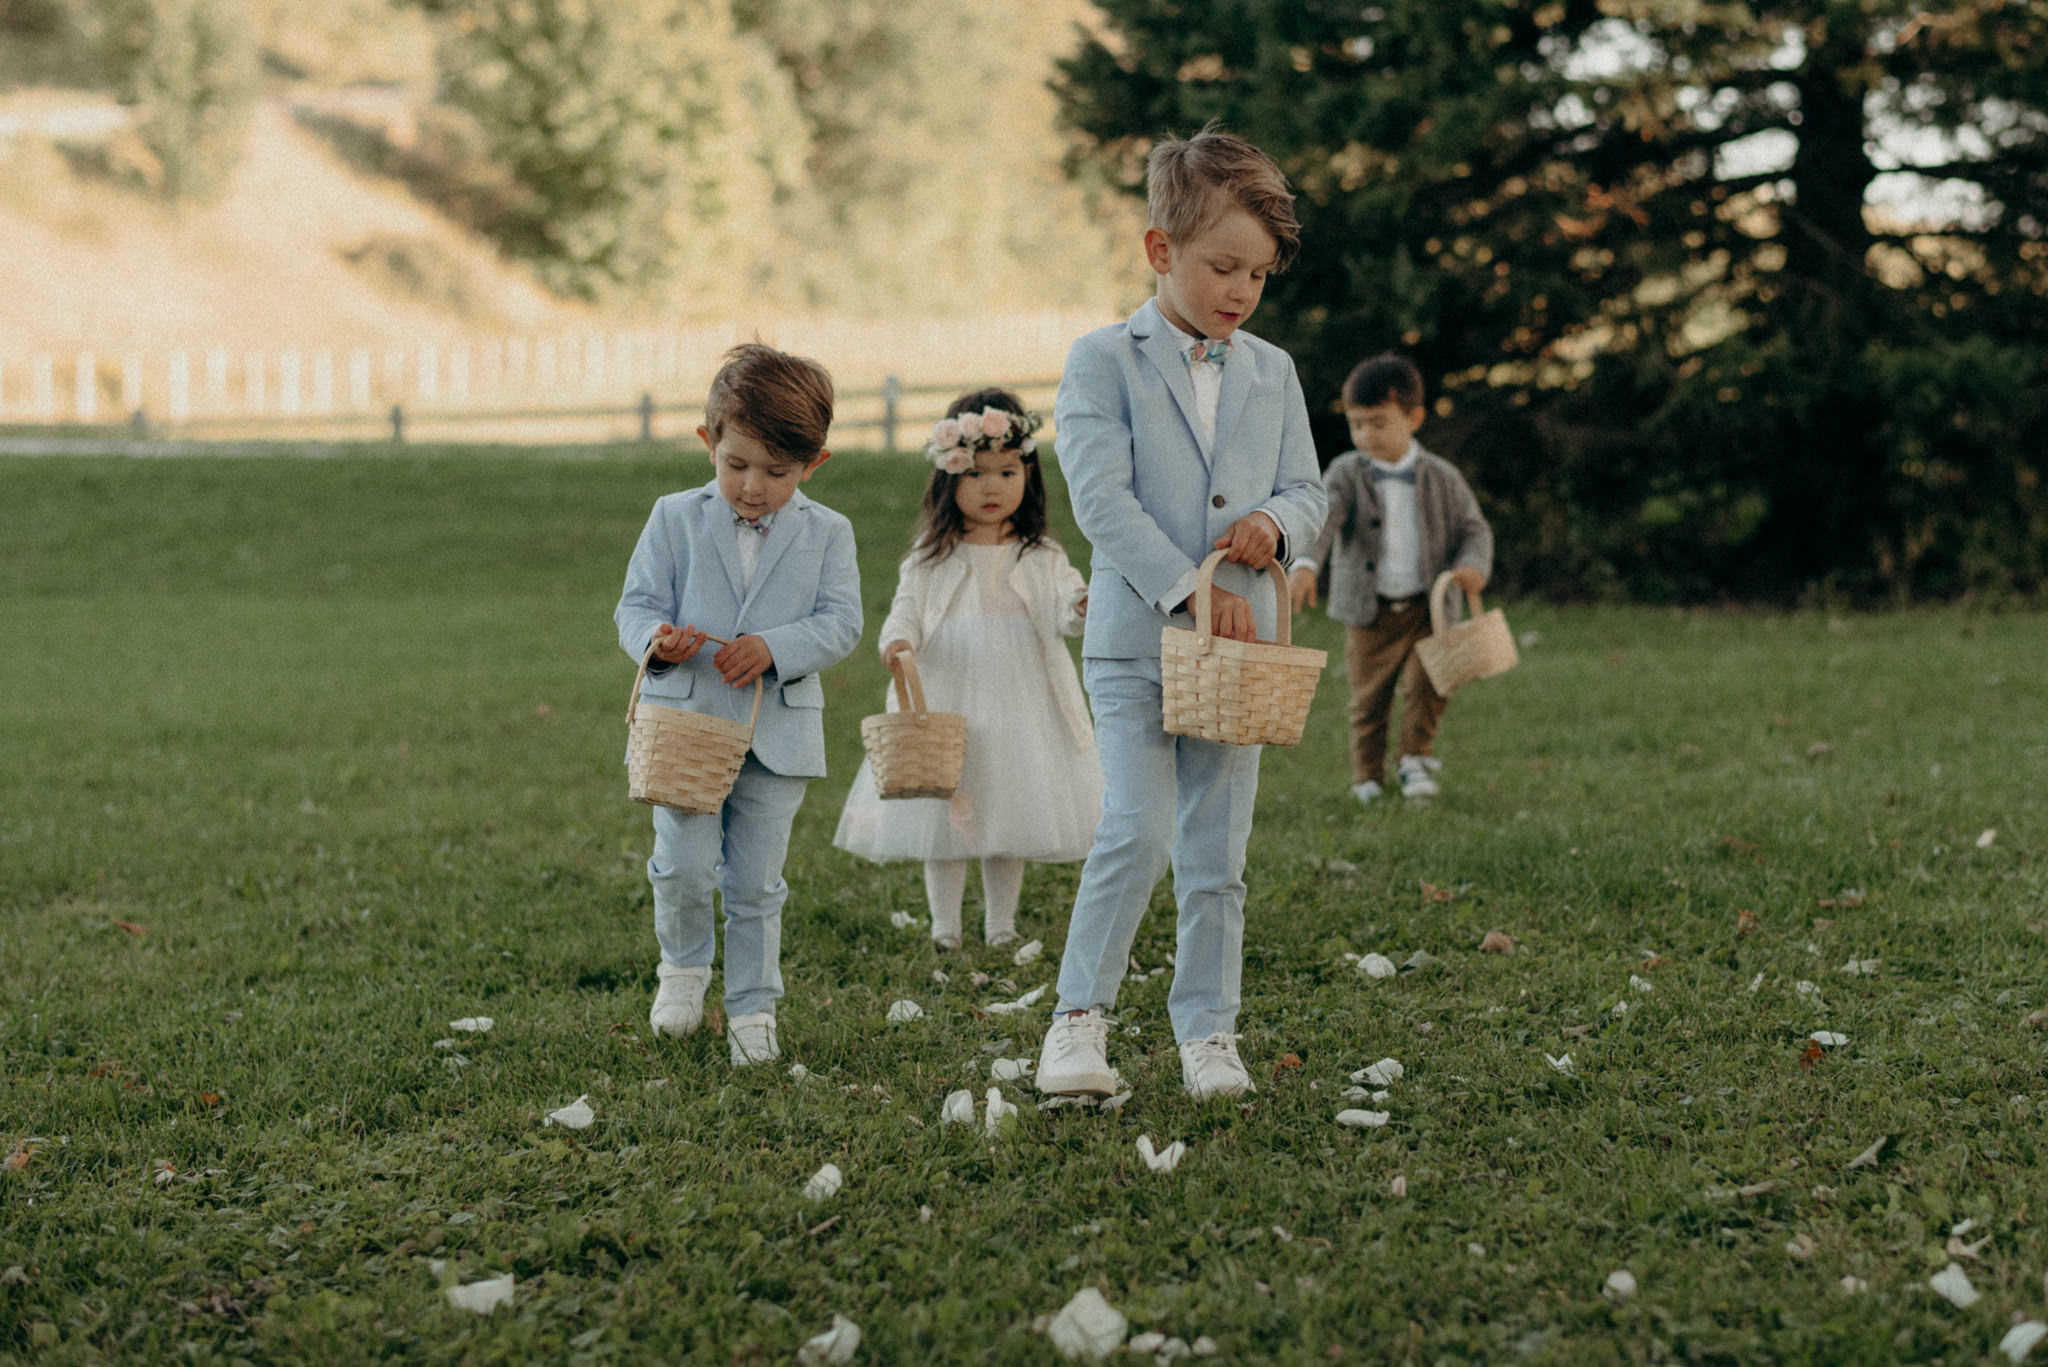 flower boys and girls walking down the aisle, outdoor wedding